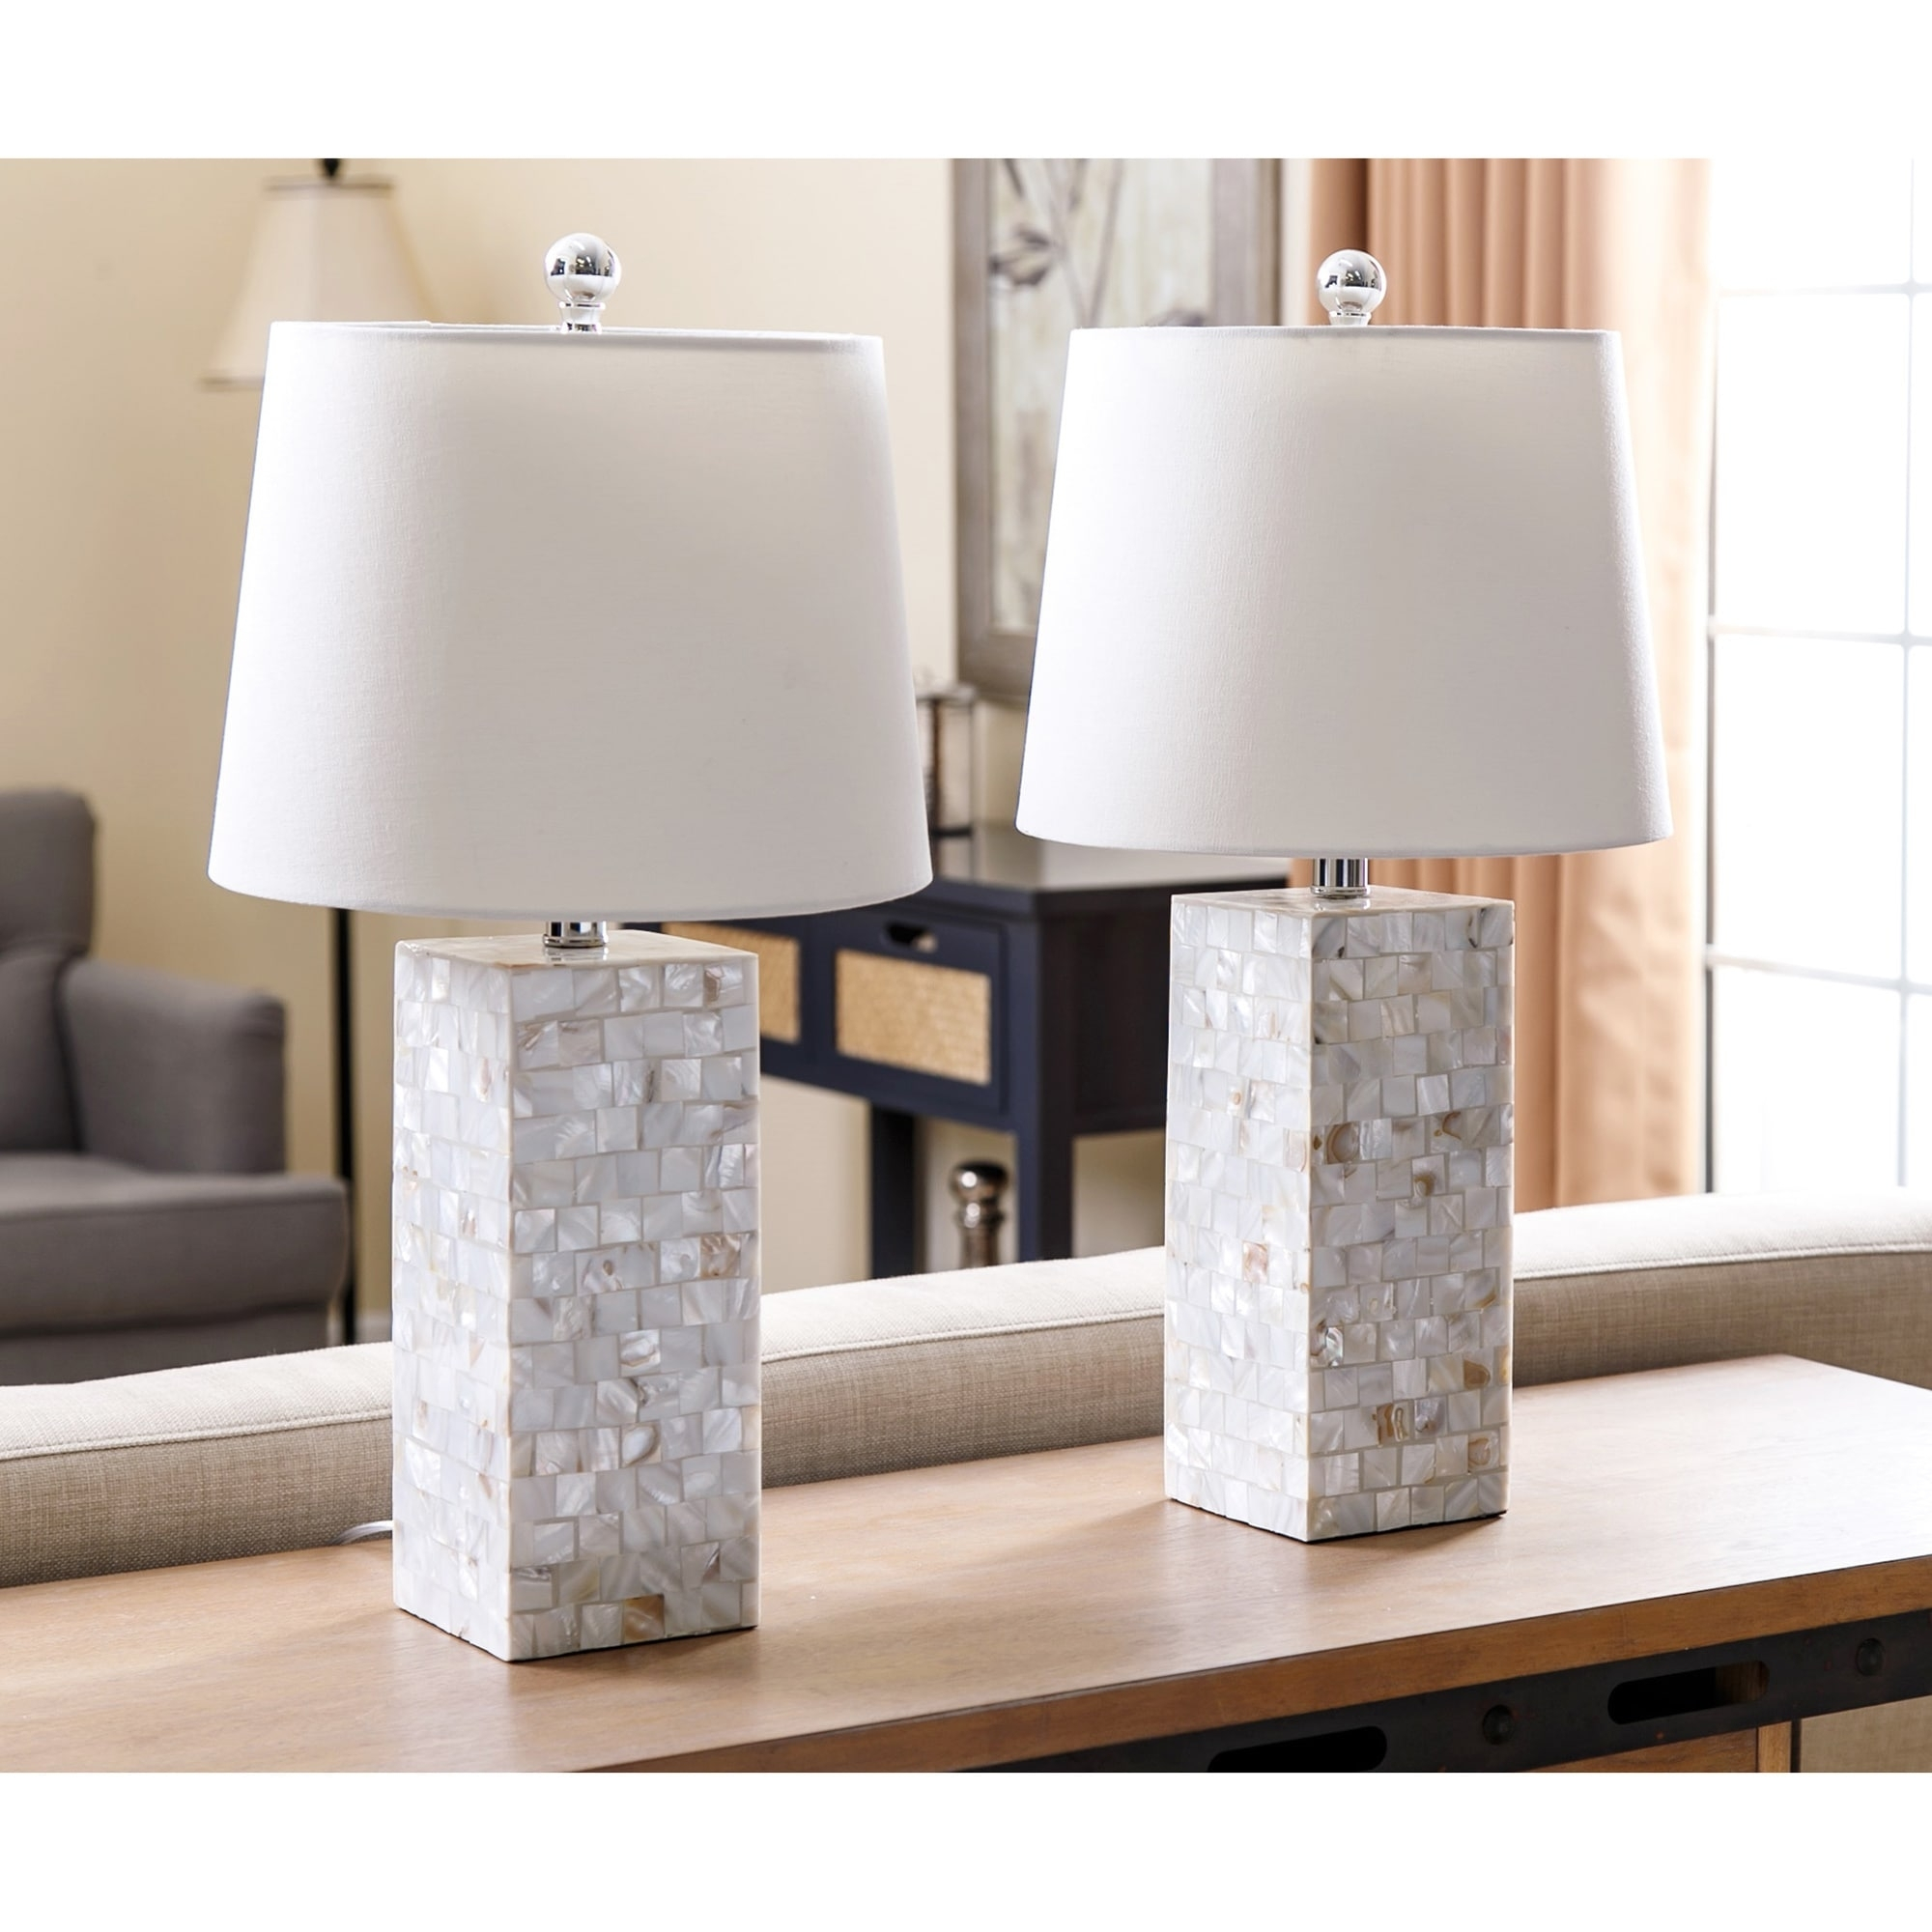 Shop Abbyson Mother Of Pearl Square Table Lamp (Set Of 2) – On Sale Regarding Set Of 2 Living Room Table Lamps (View 12 of 15)